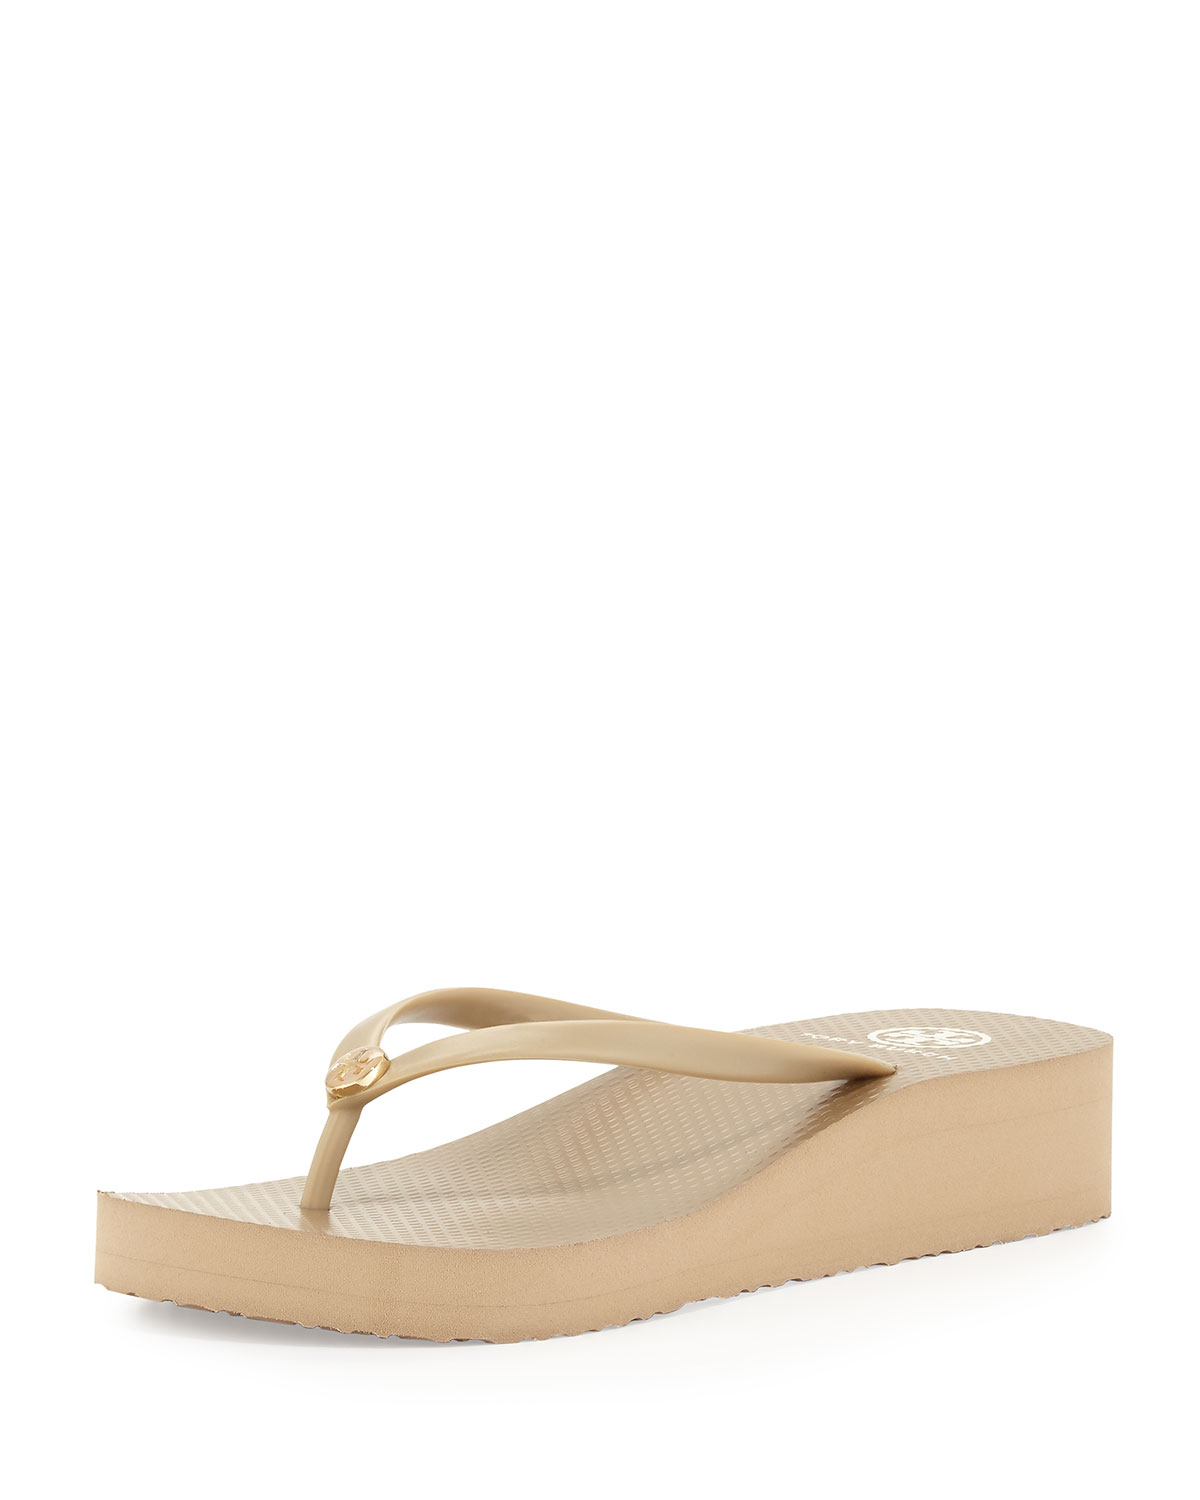 180fdd52e455 Tory Burch Rubber Wedge Flip-Flop